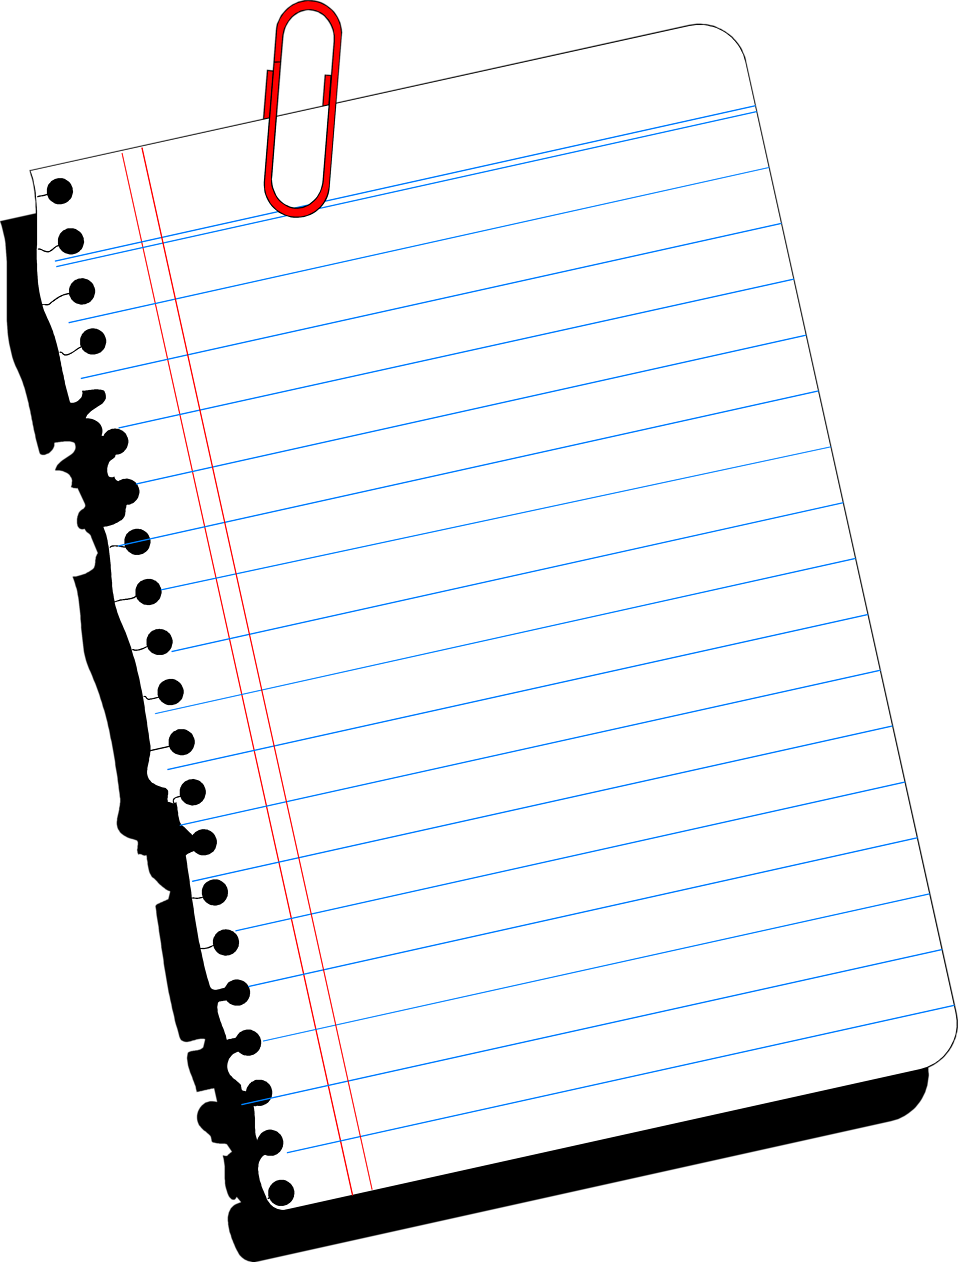 Free Stock Photo: Illustration of a blank notebook paper